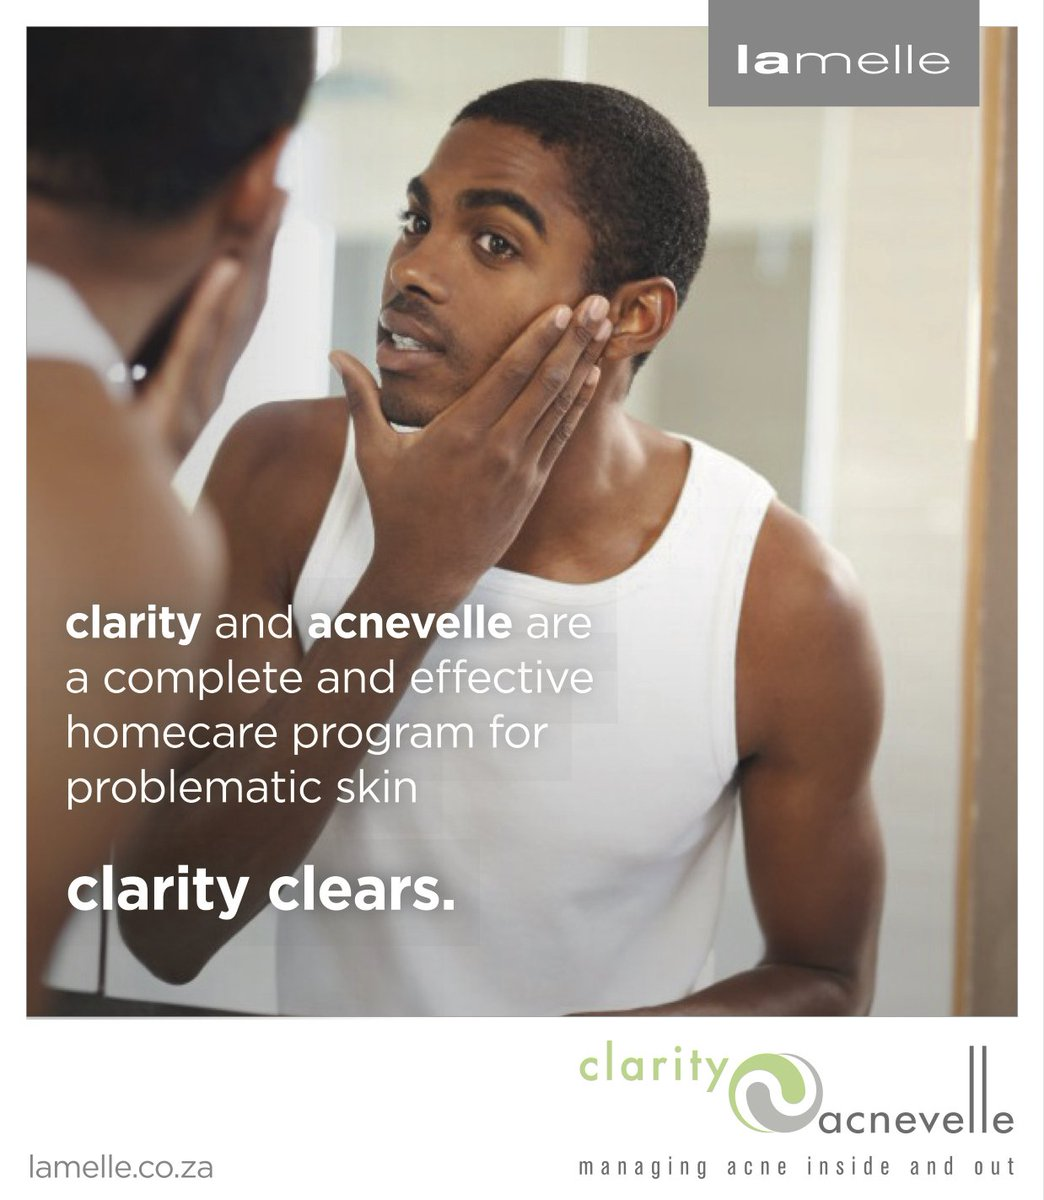 Clarity is a complete home care solution for problematic skin. Ask your skincare professional about Clarity now. #ClarityClears